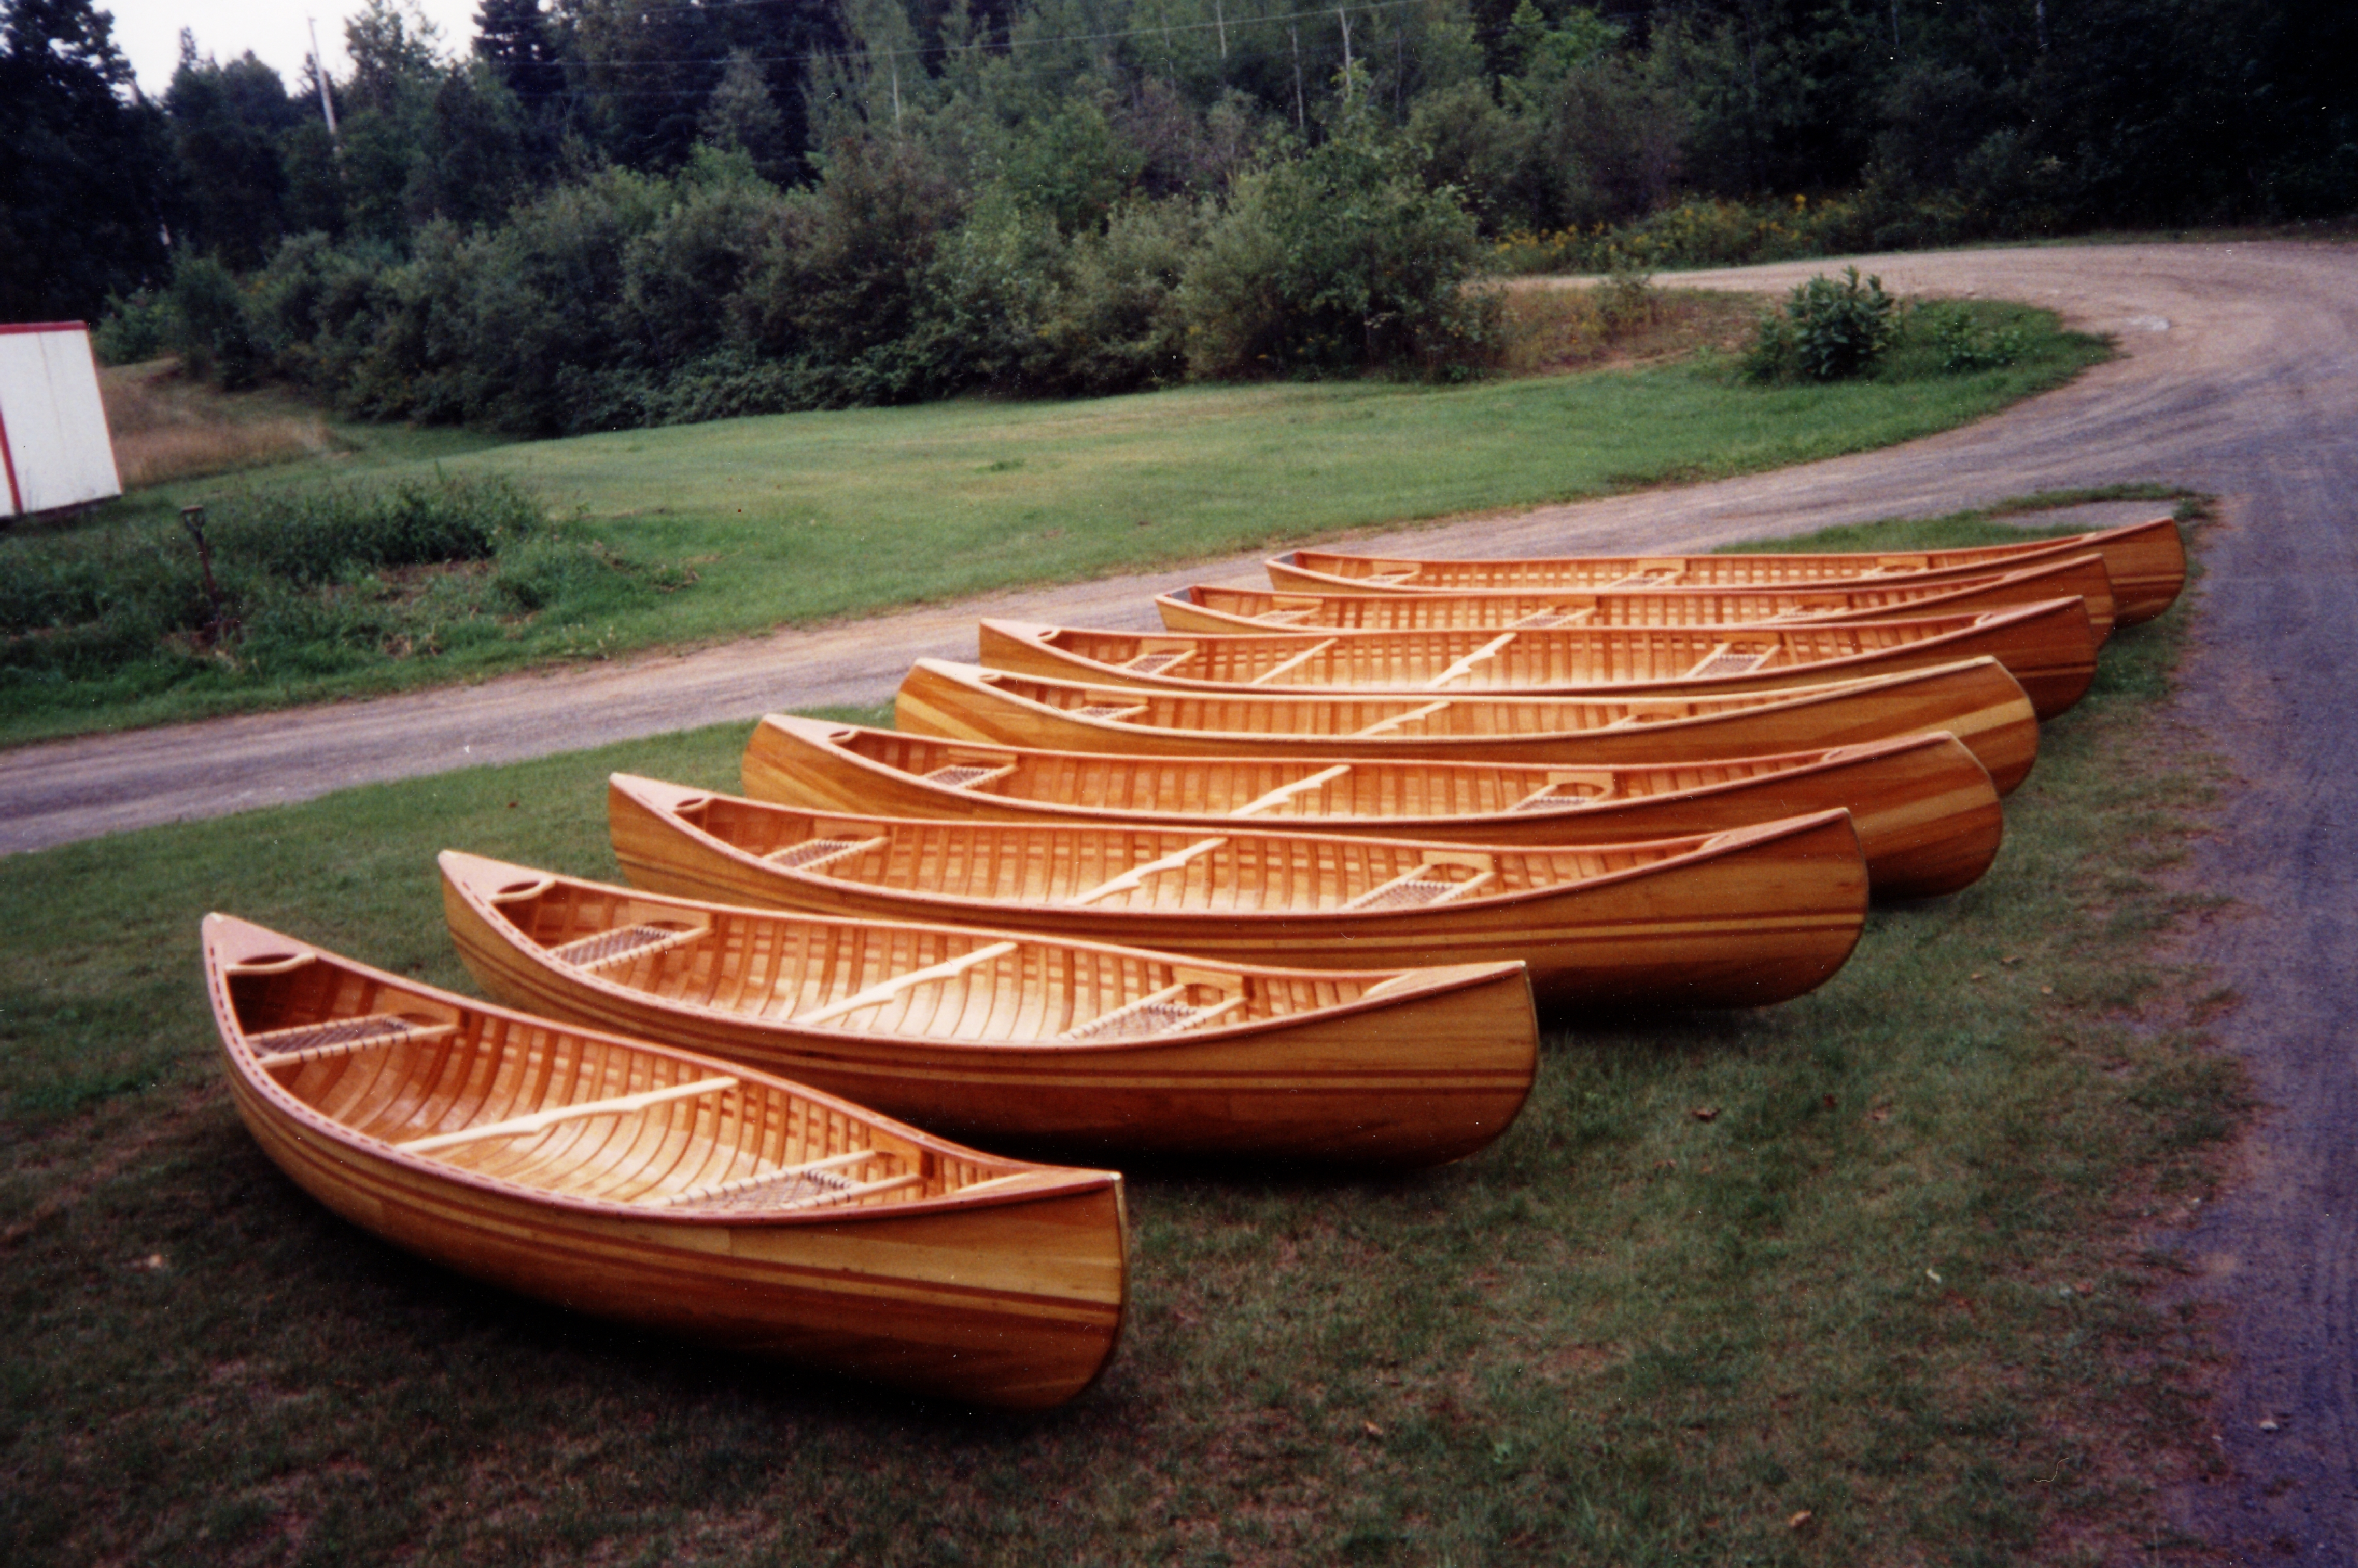 Differents canoes